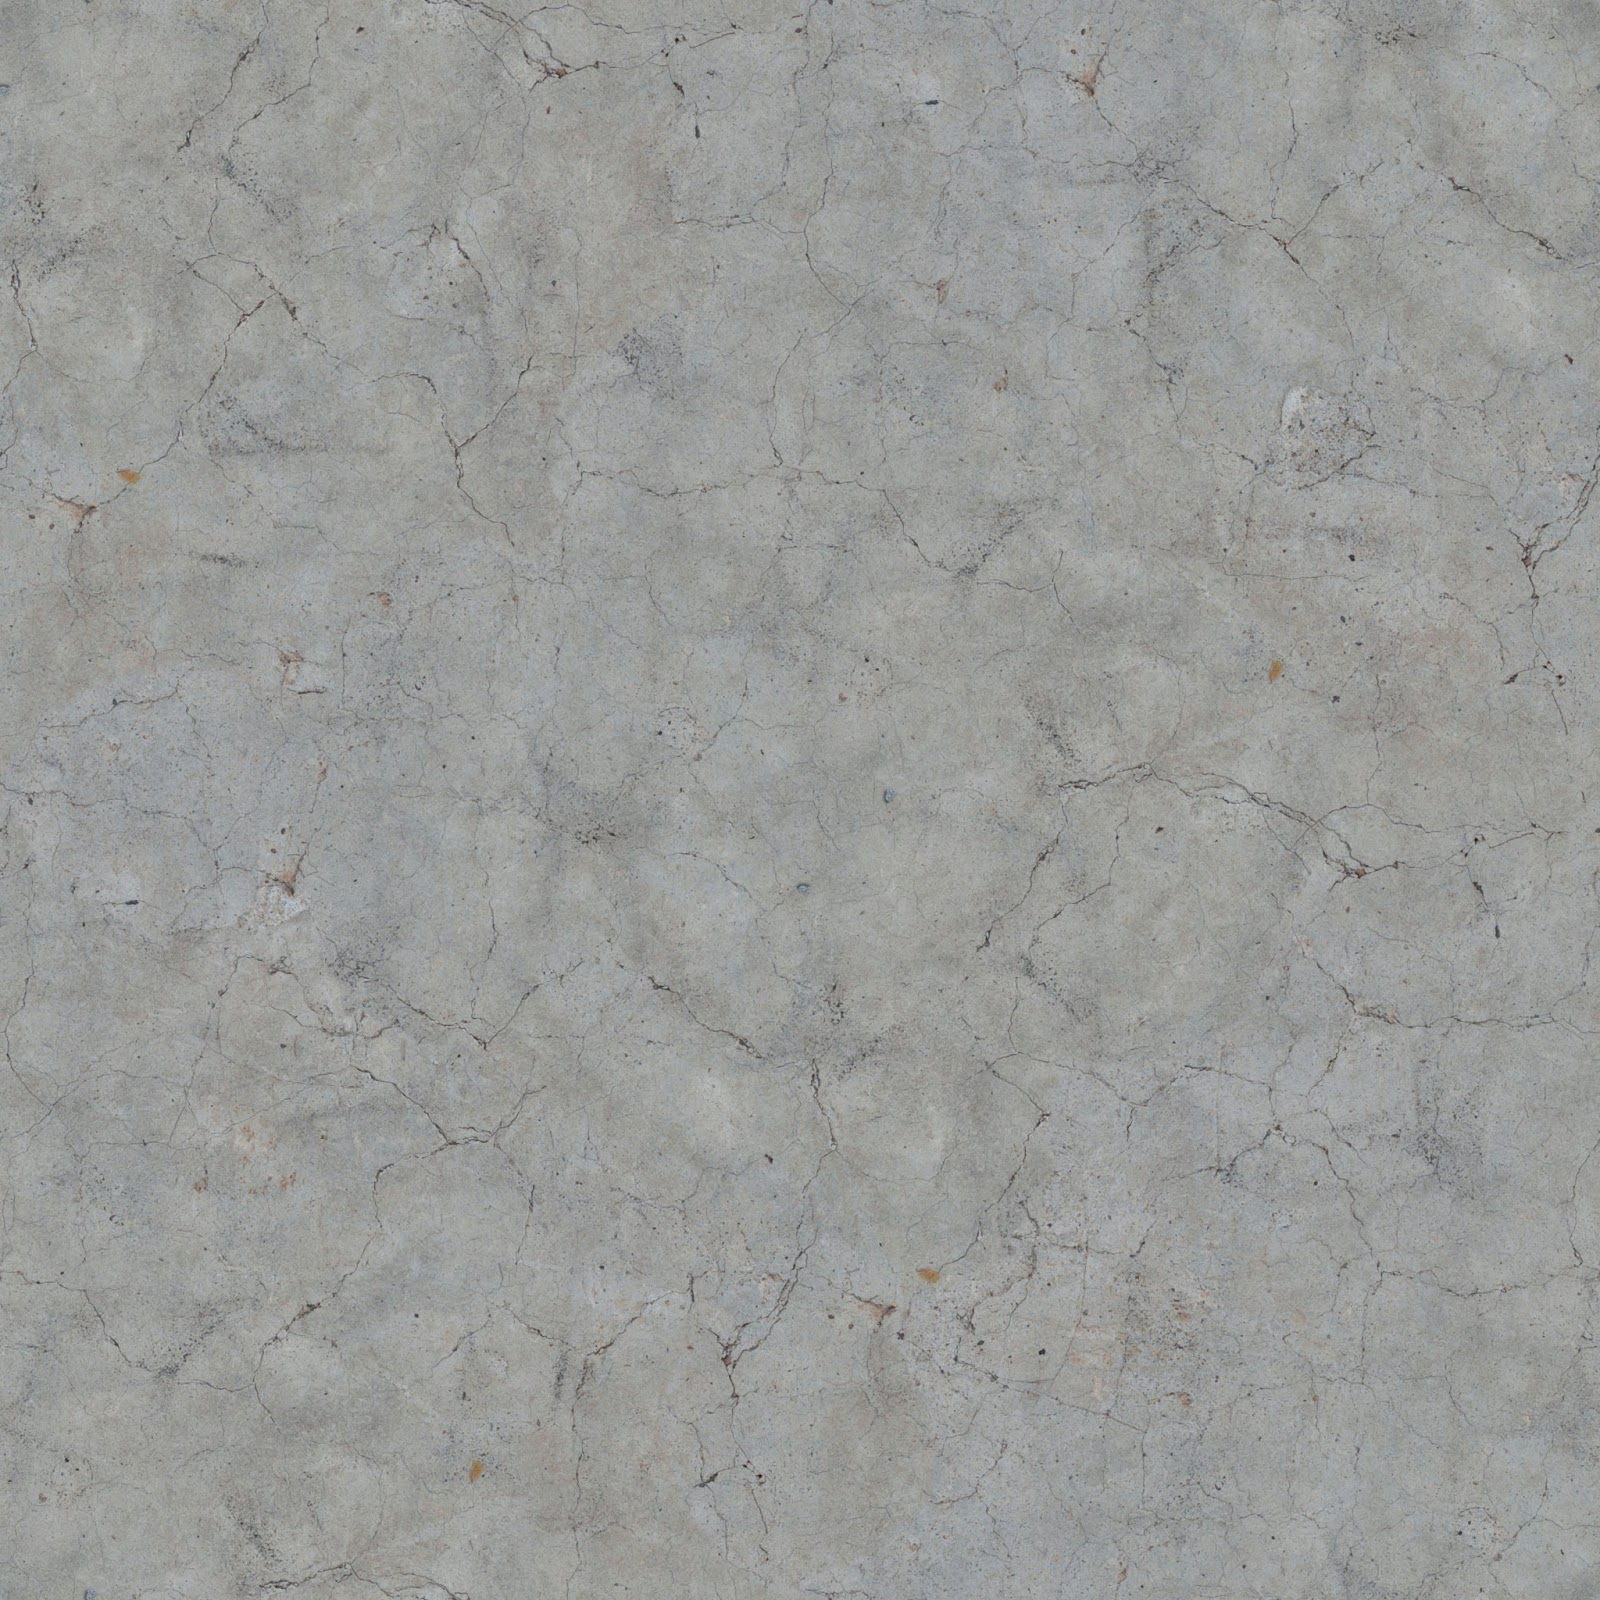 HIGH RESOLUTION TEXTURES: Concrete that is cracked texture